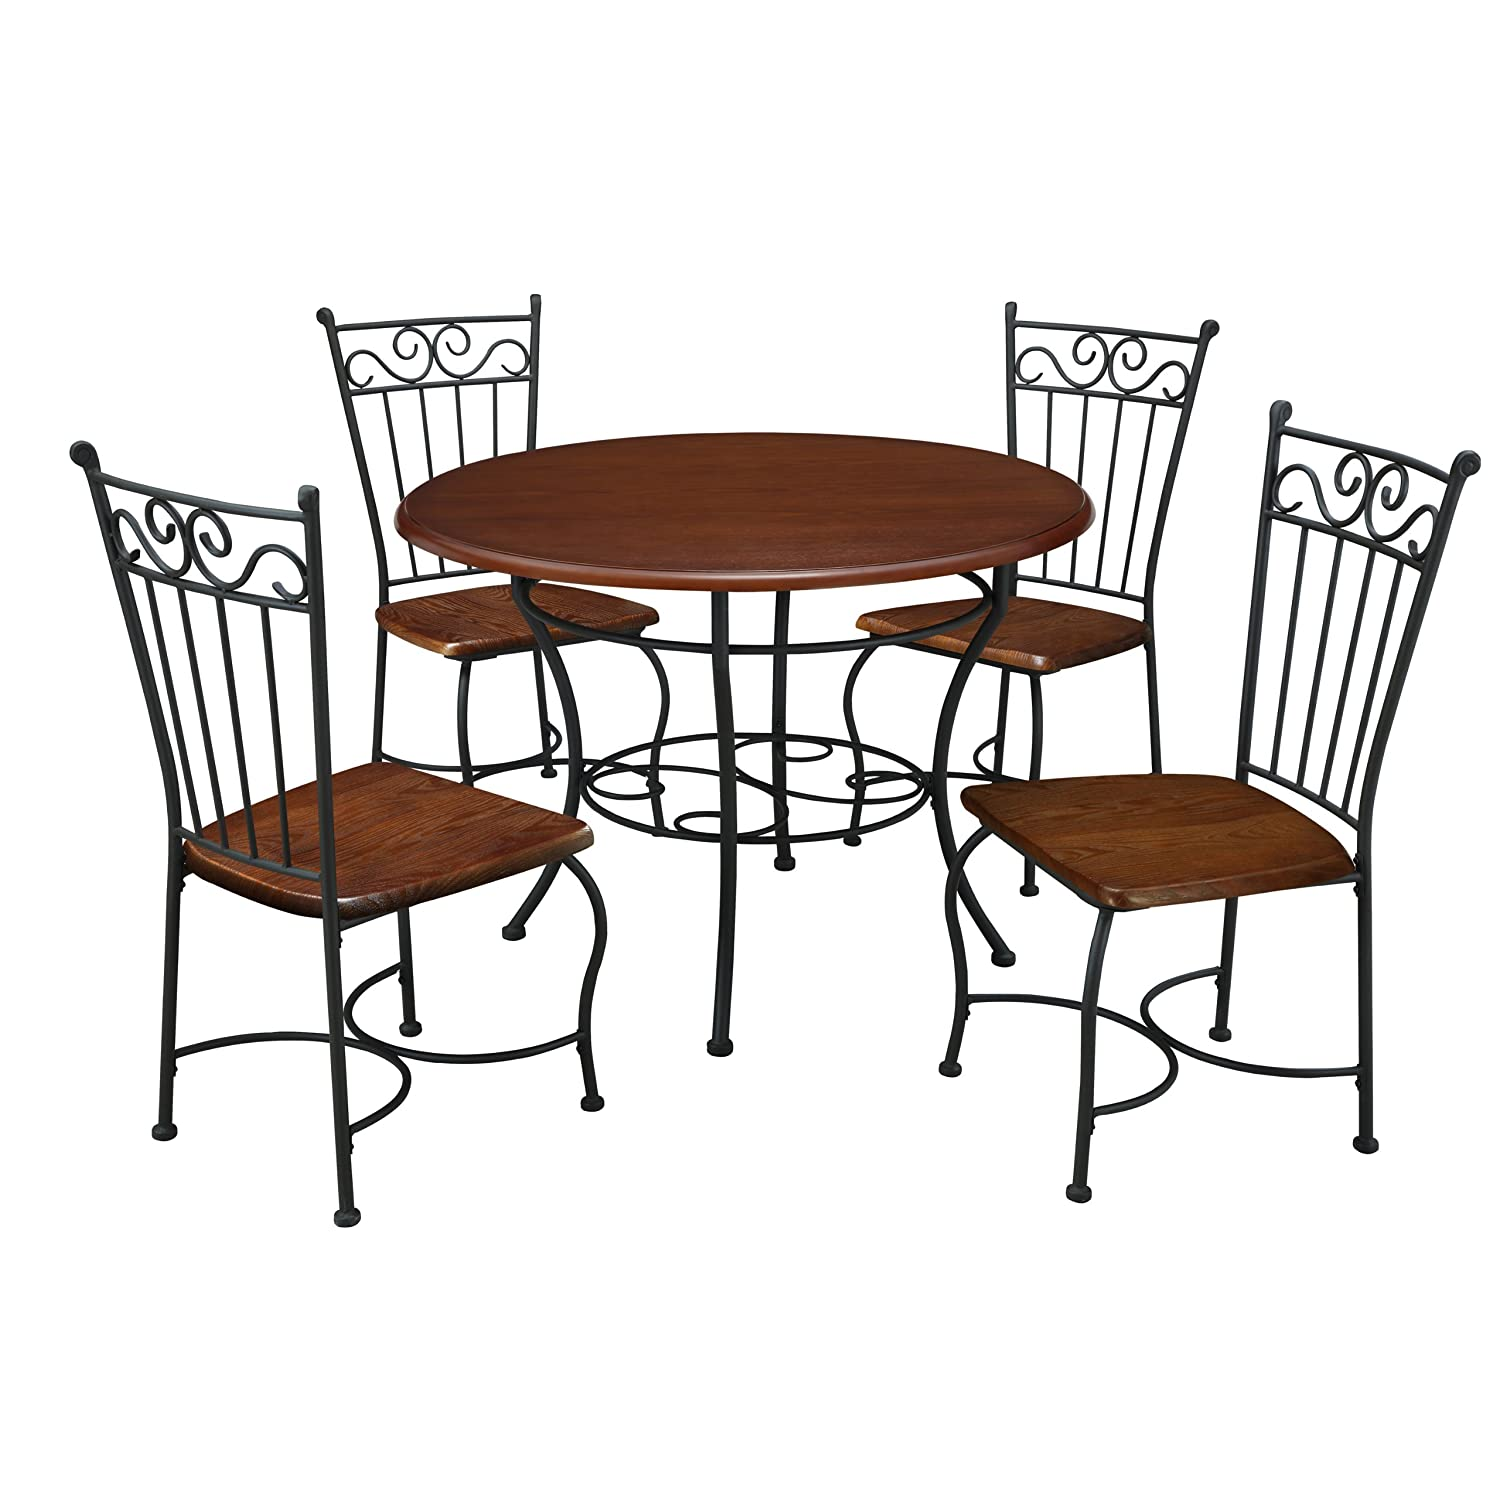 Amazoncom Dorel Living 5 Piece Wood and Metal Cafe Style Dinette